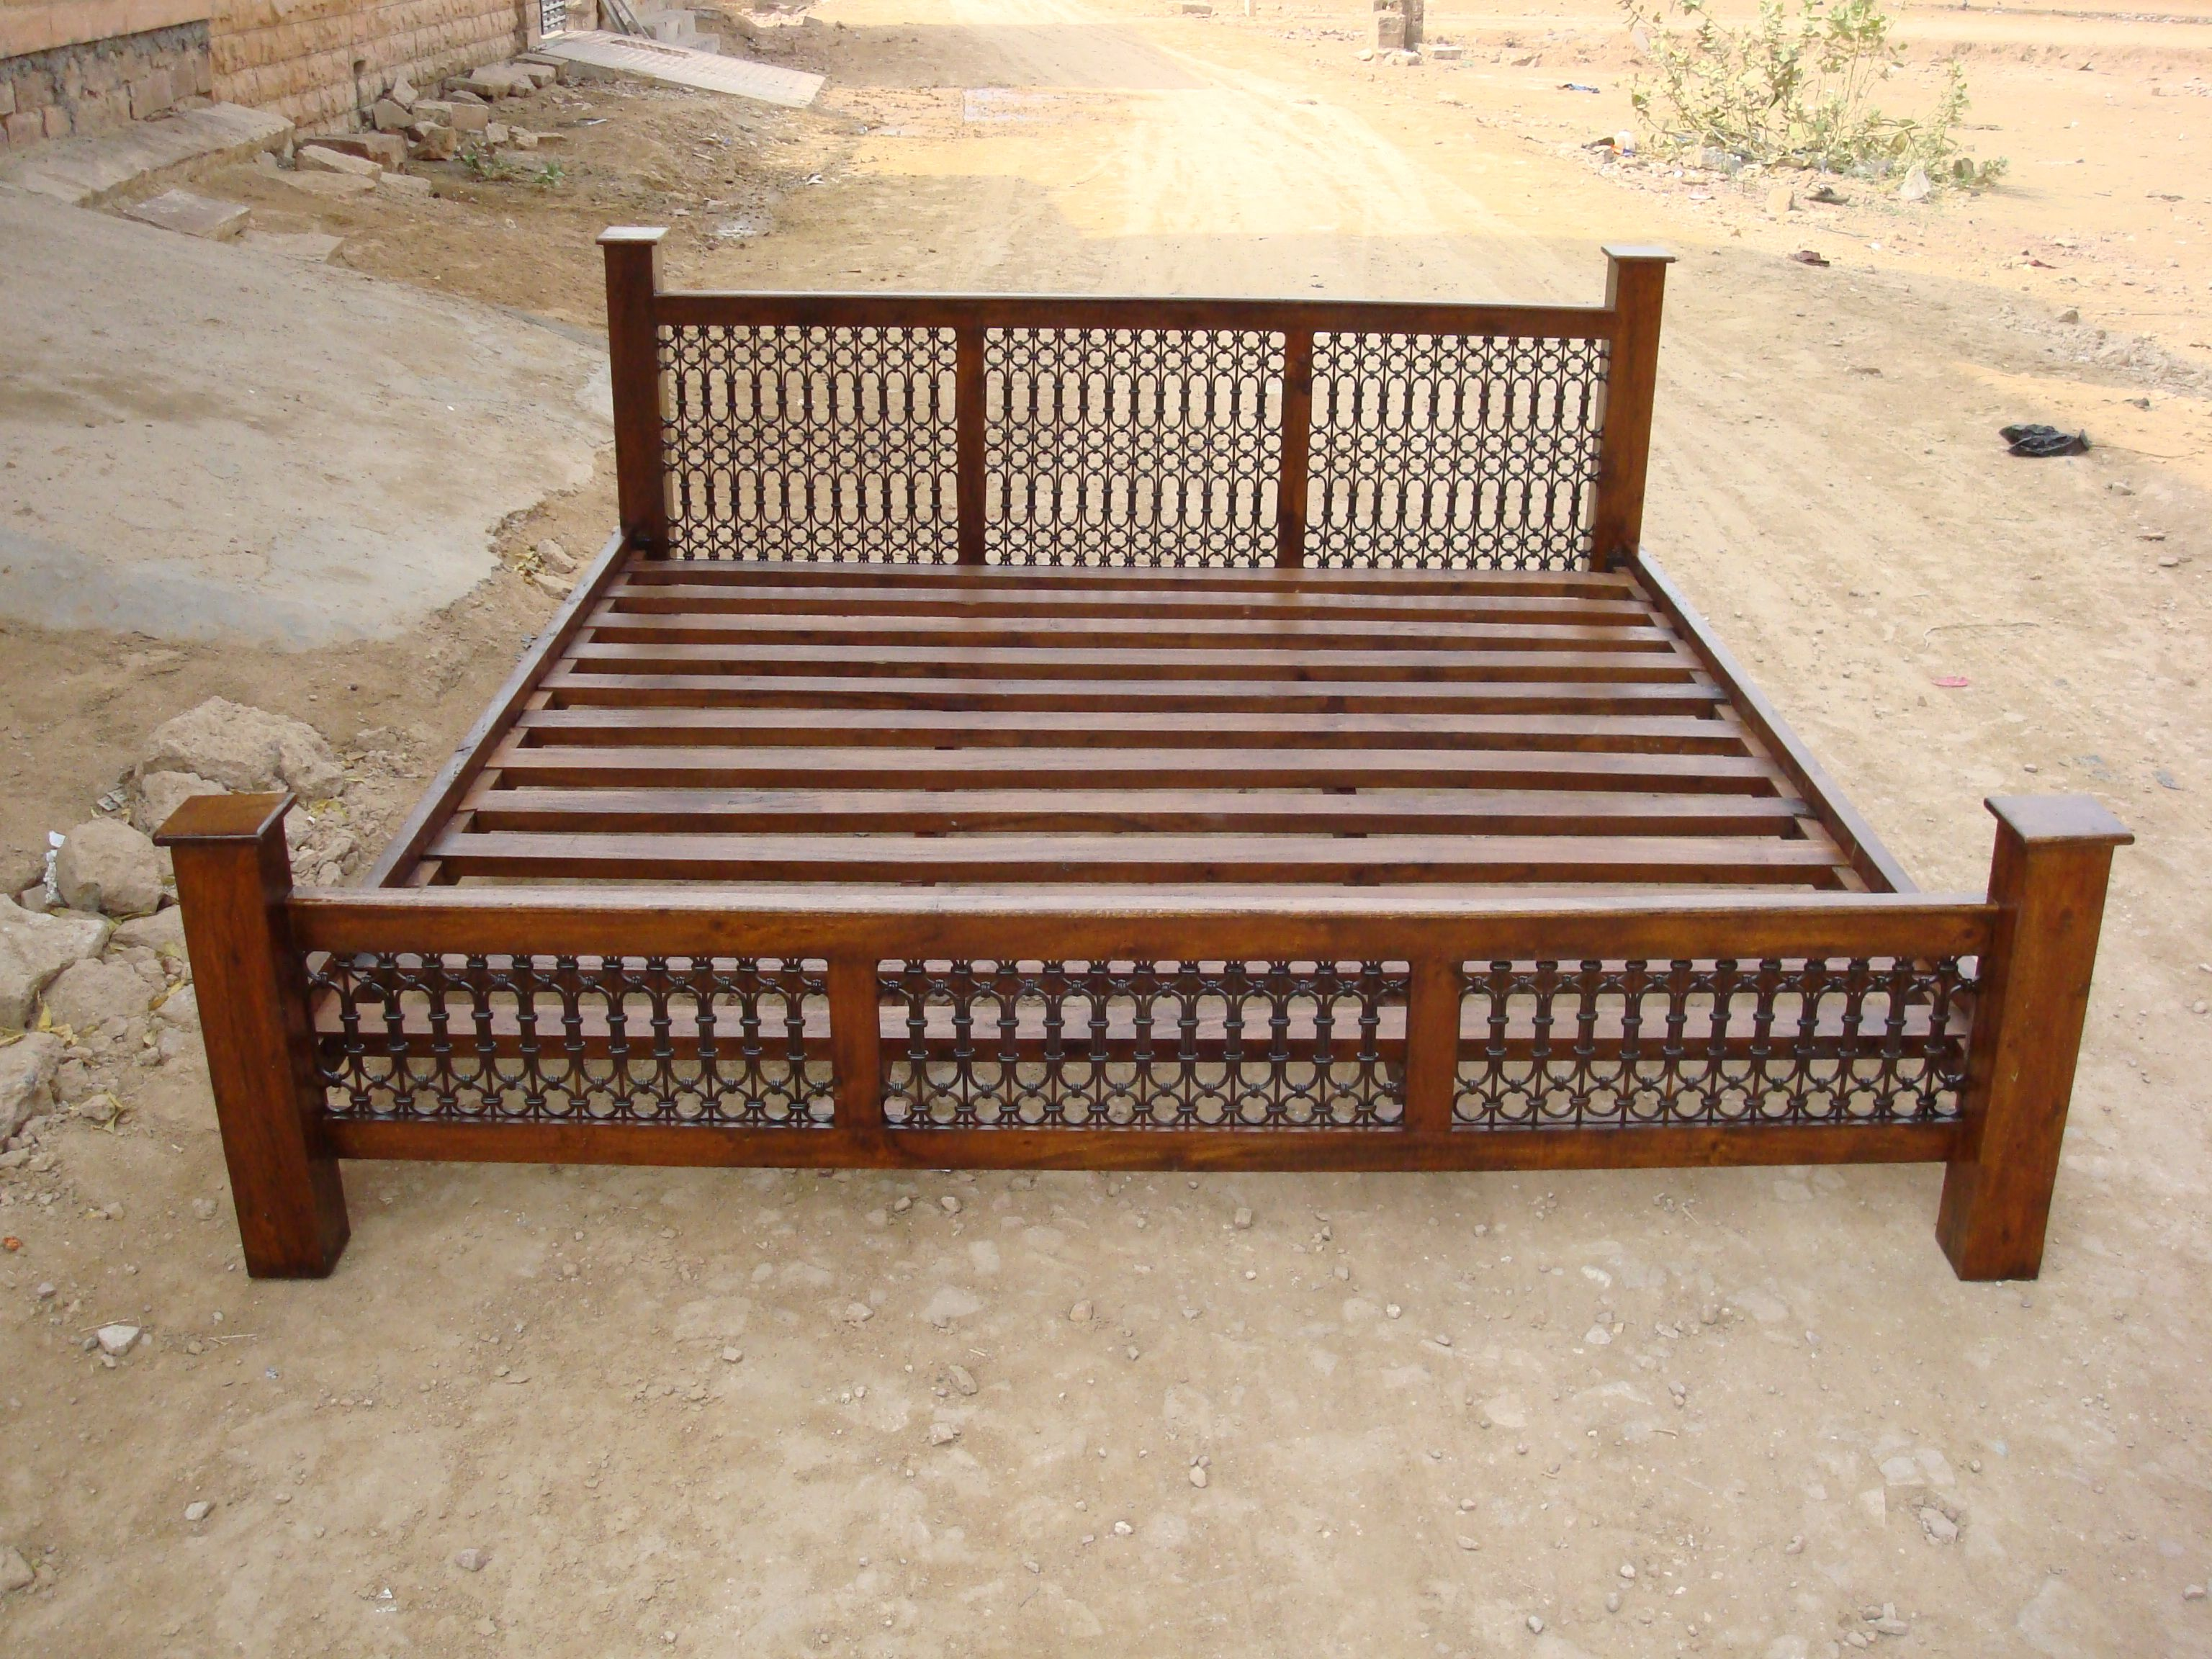 Indian Wooden Storage Bed Wooden Double Bed Wooden Beds From India Sheesham Wood Beds